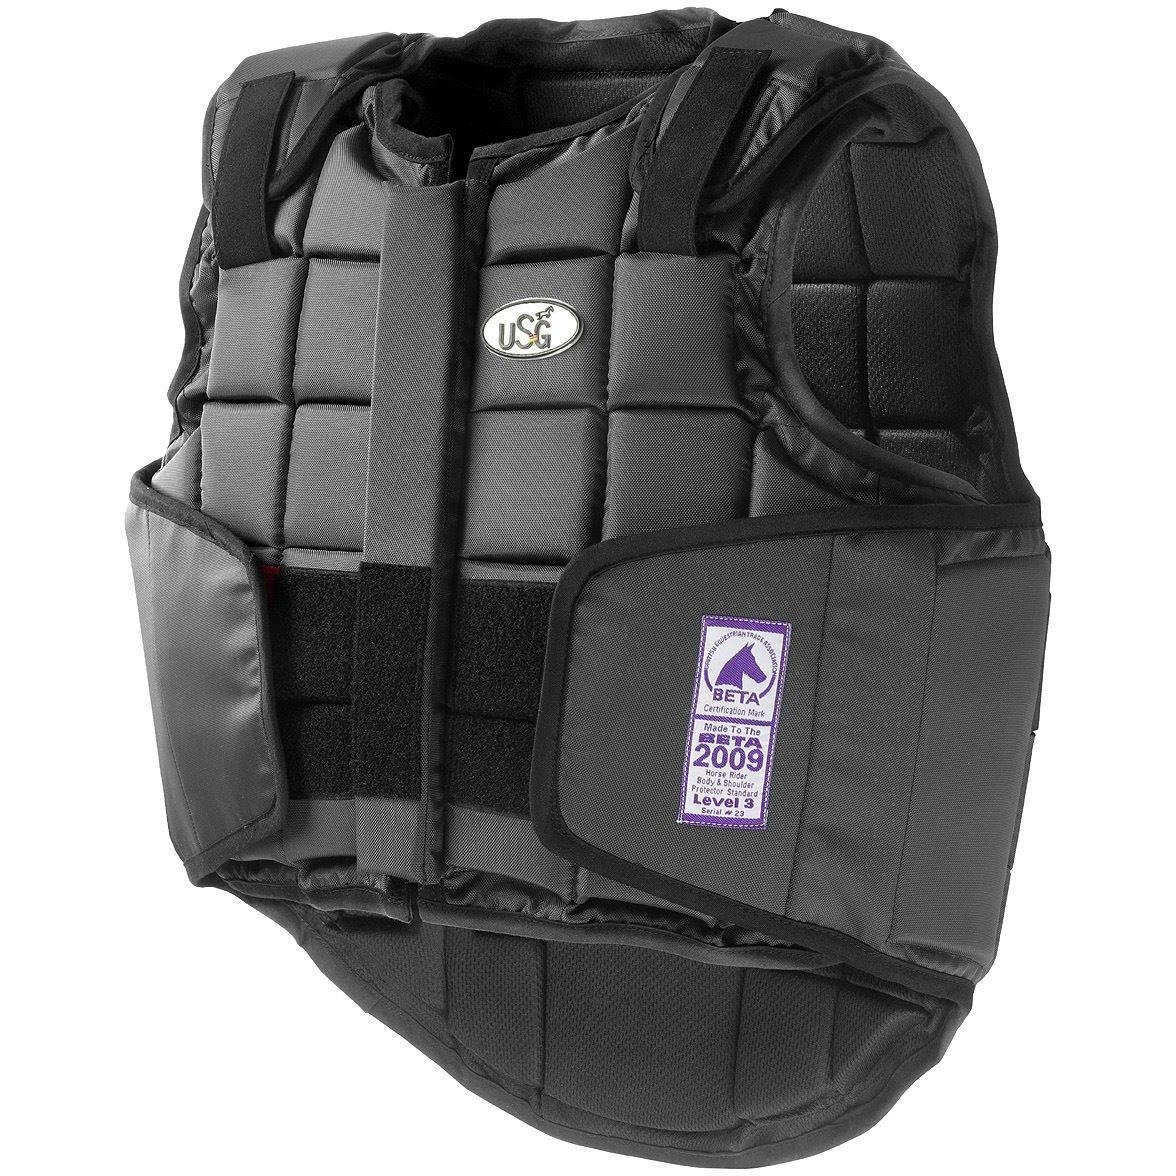 USG Square SOS Panel USG Flexi Childs Body Protector